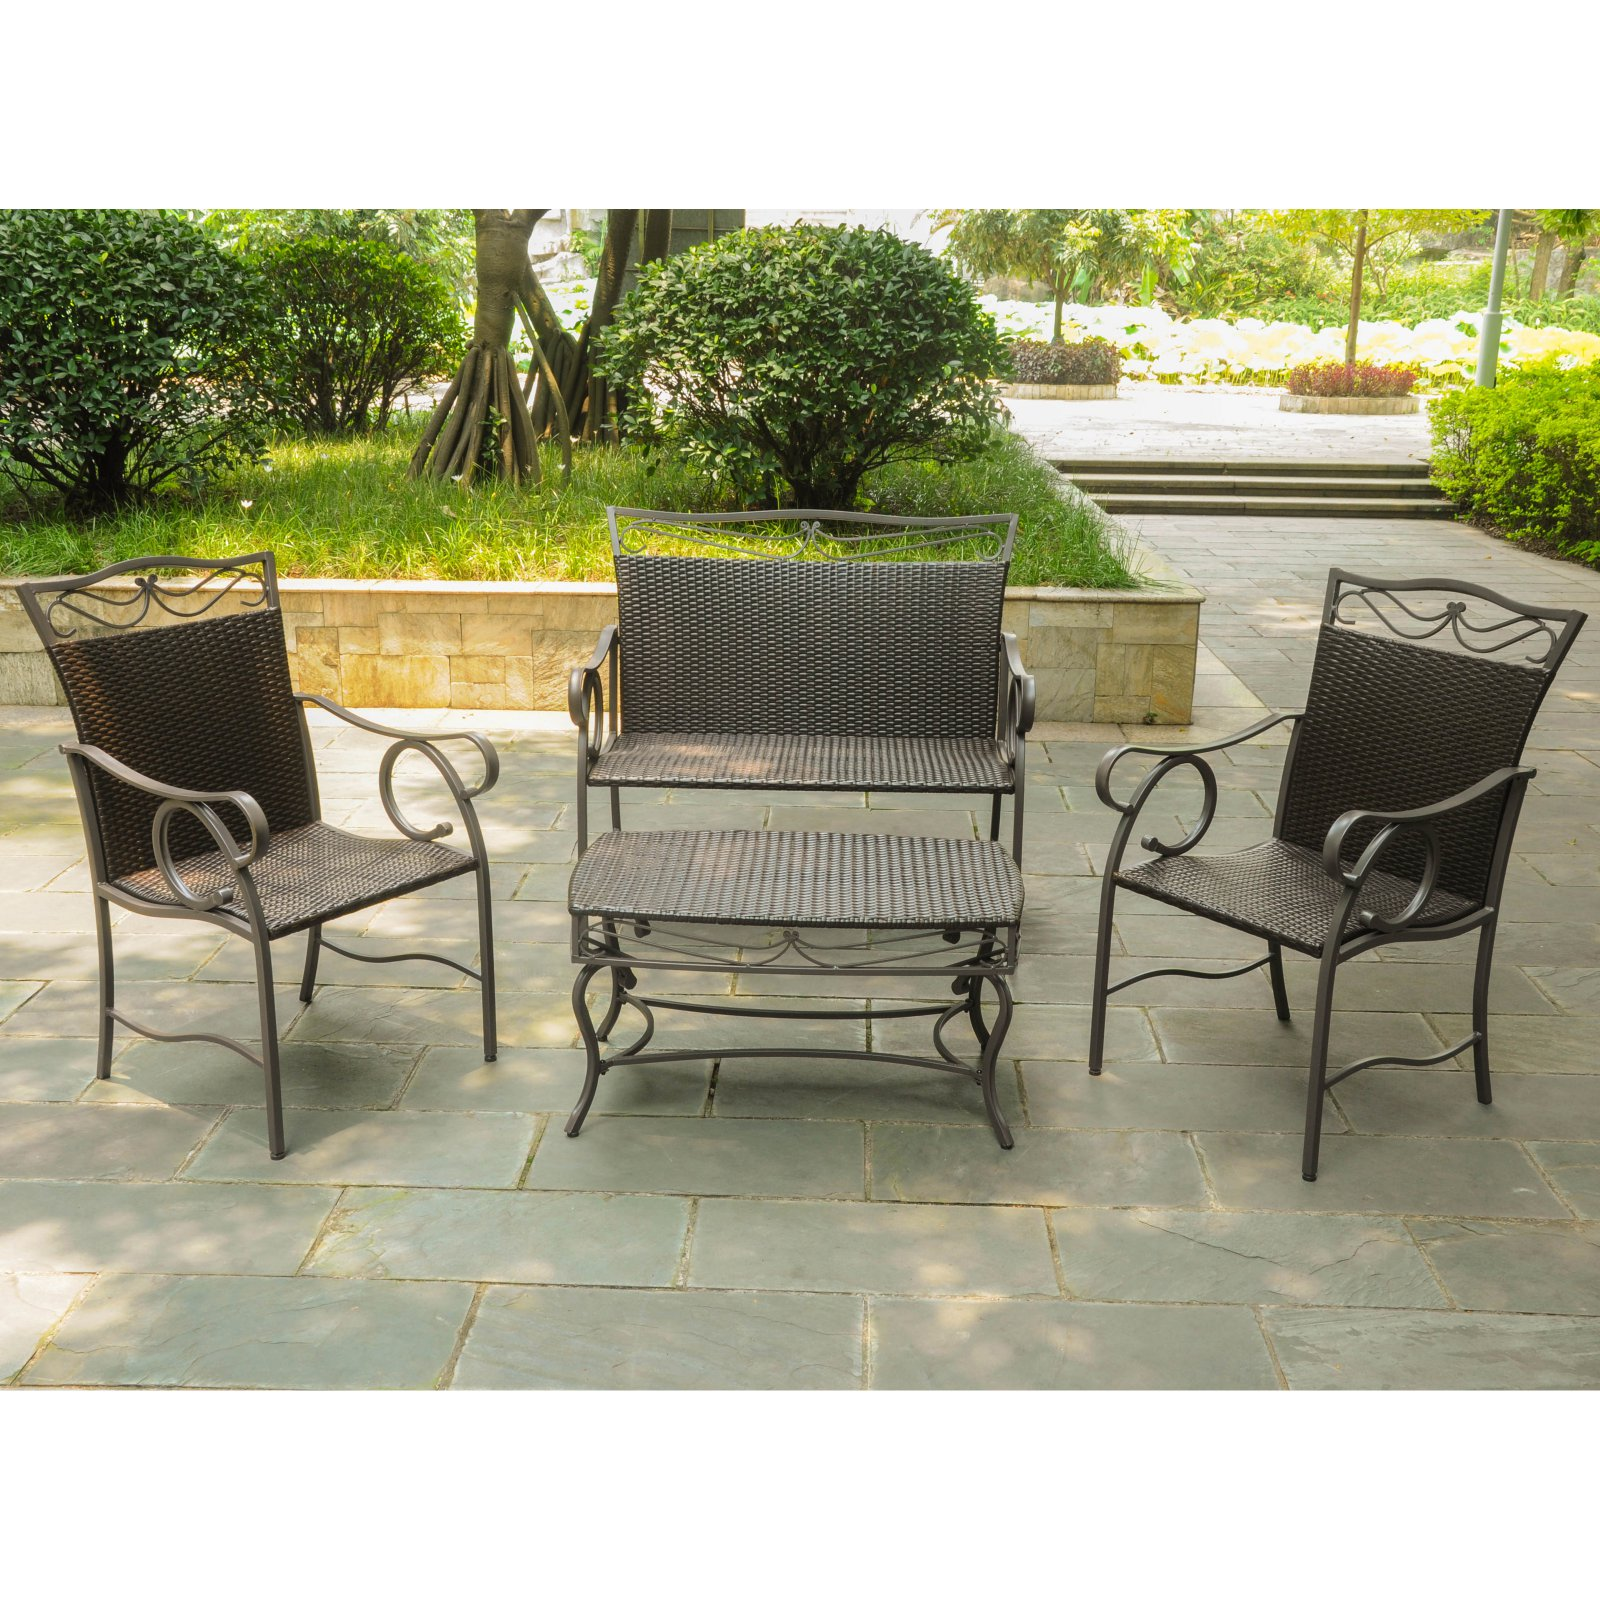 Delicieux International Caravan Valencia All Weather 4 Pc. Wicker Patio Settee  Conversation Set   Seats